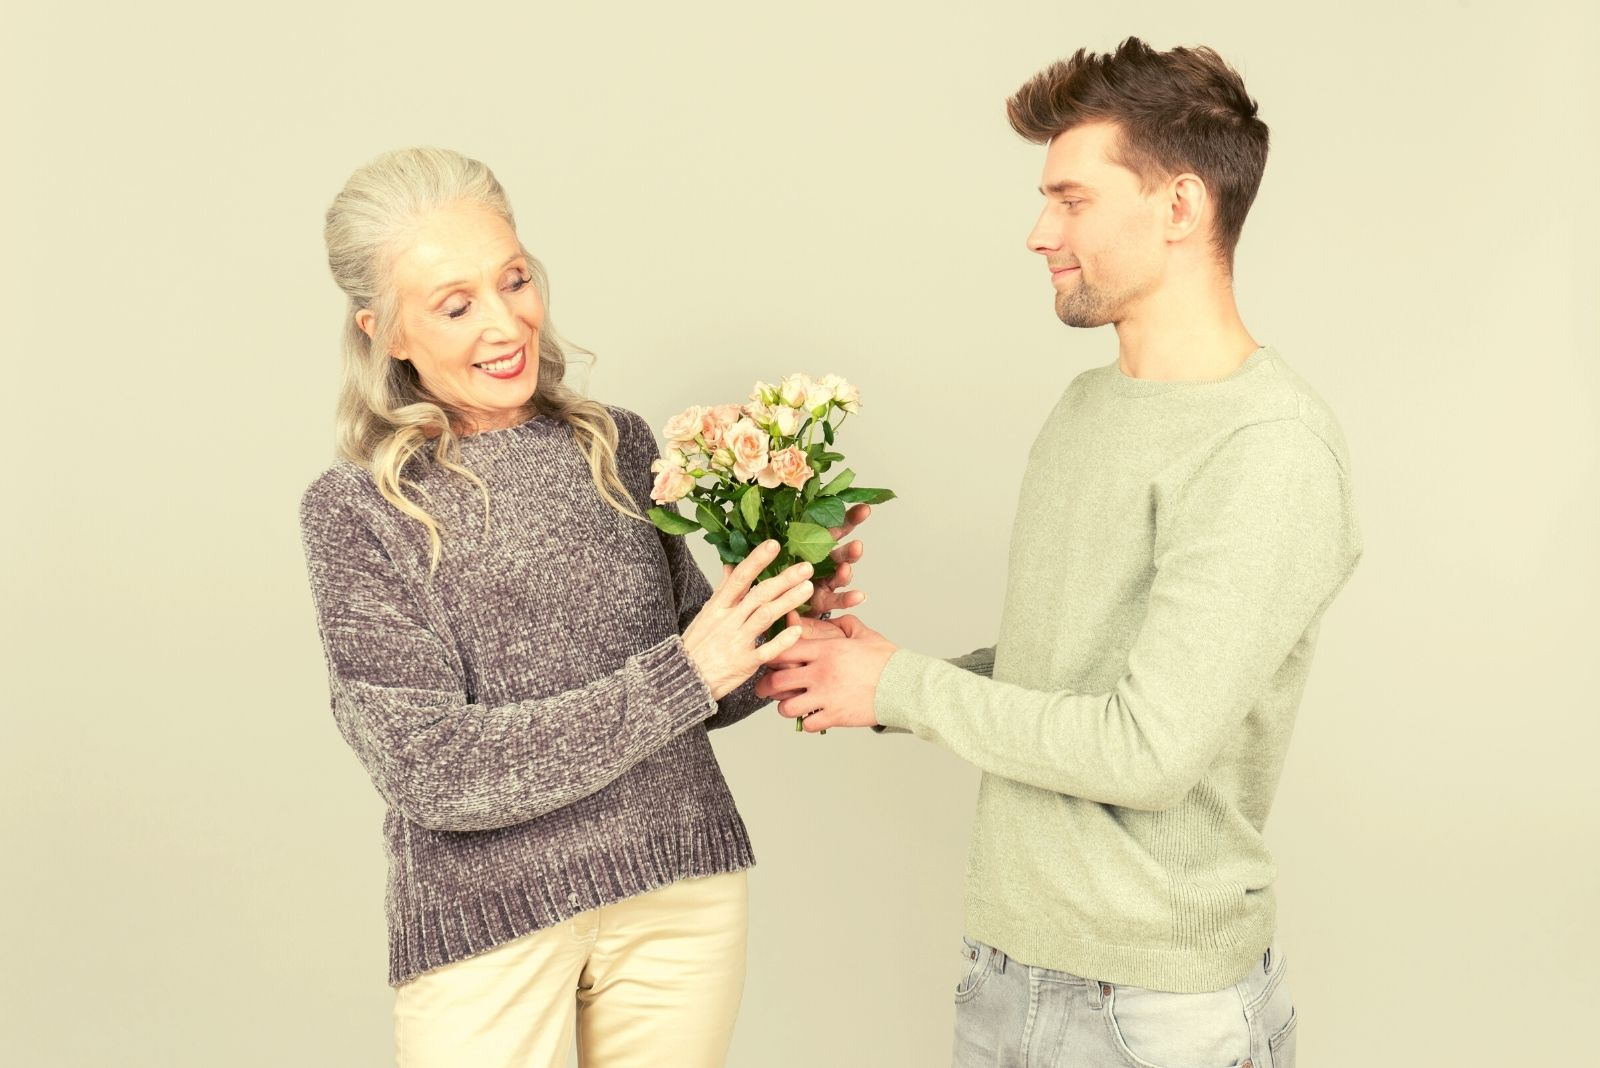 age gap love of a younger man giving flower to a mature woman